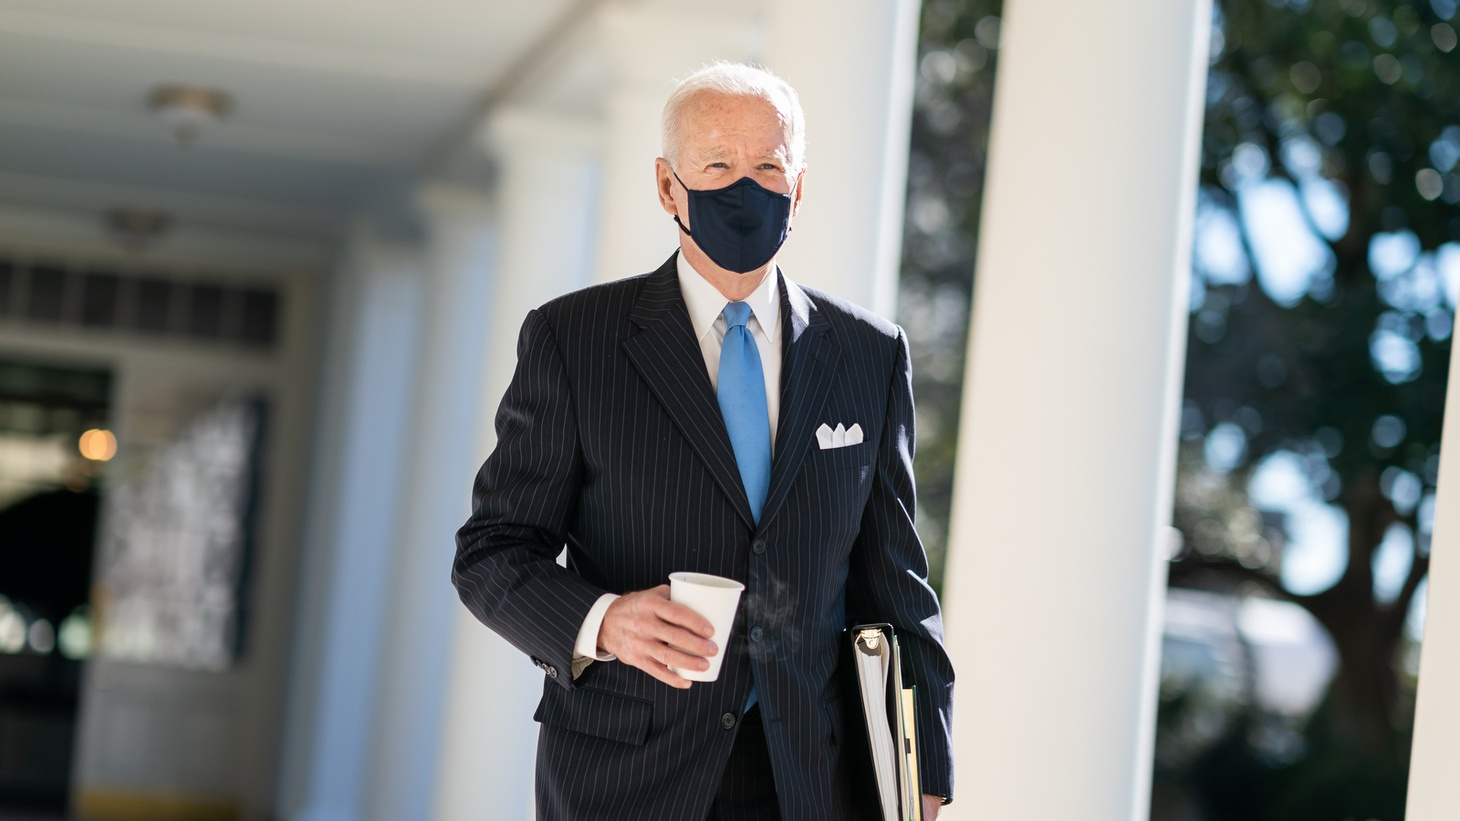 President Joe Biden walks with a cup of coffee, along the Colonnade of the White House to the Oval Office.